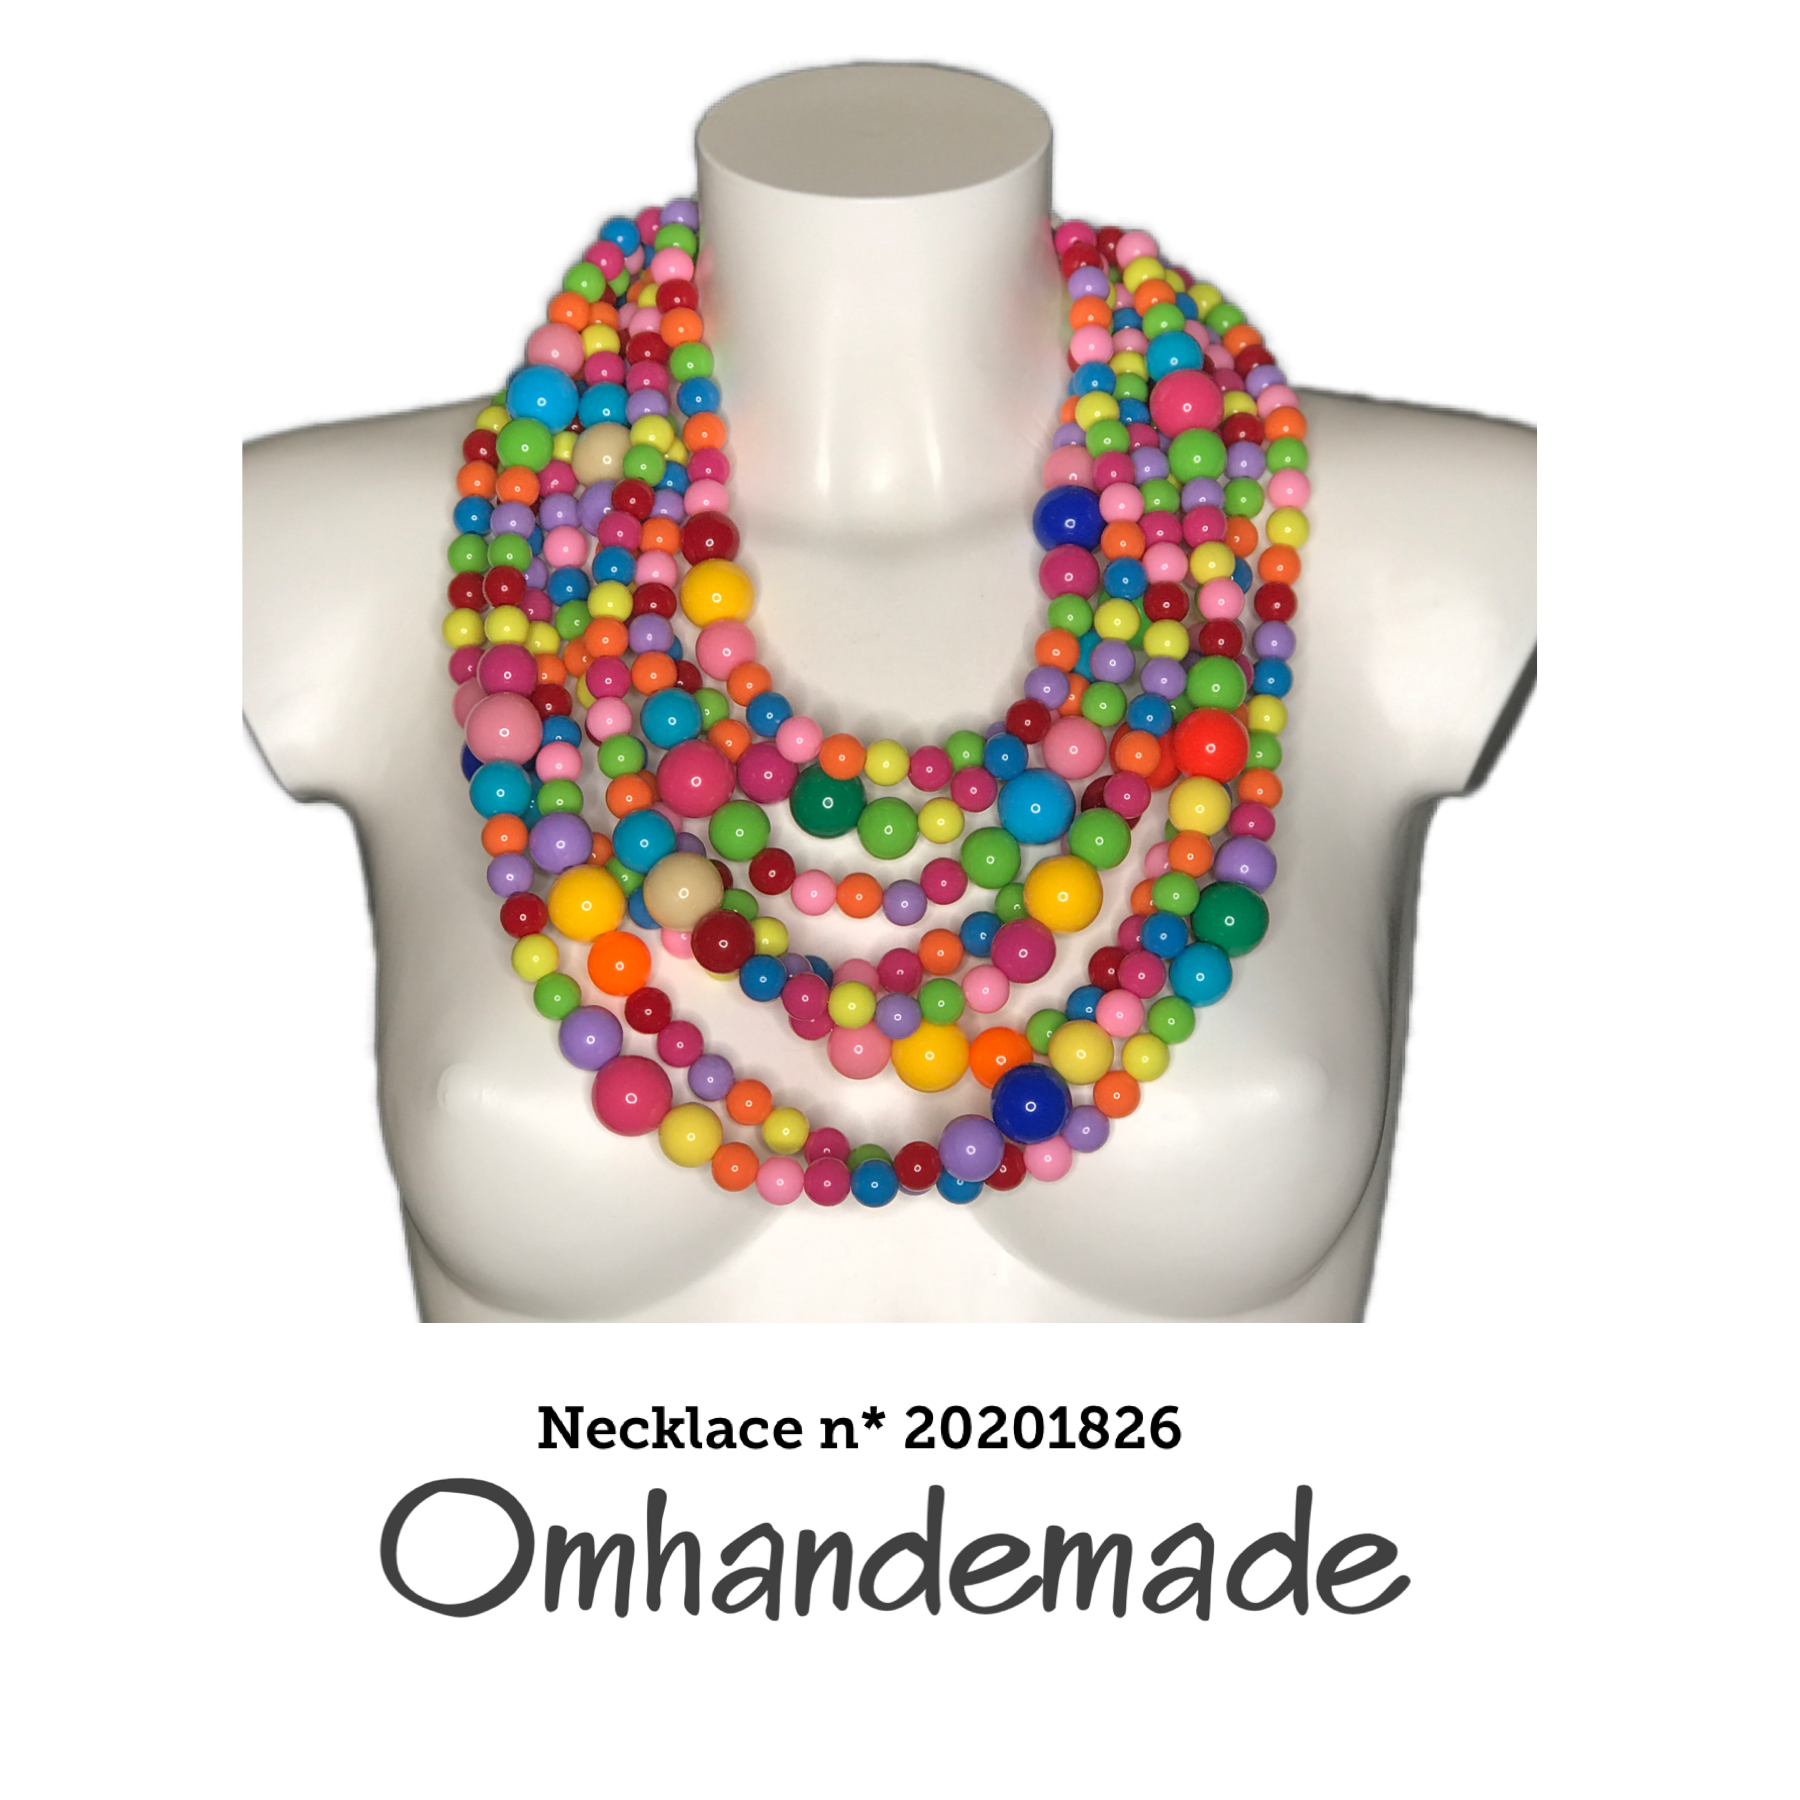 20201826 Collana media multicolor - Omhandemade